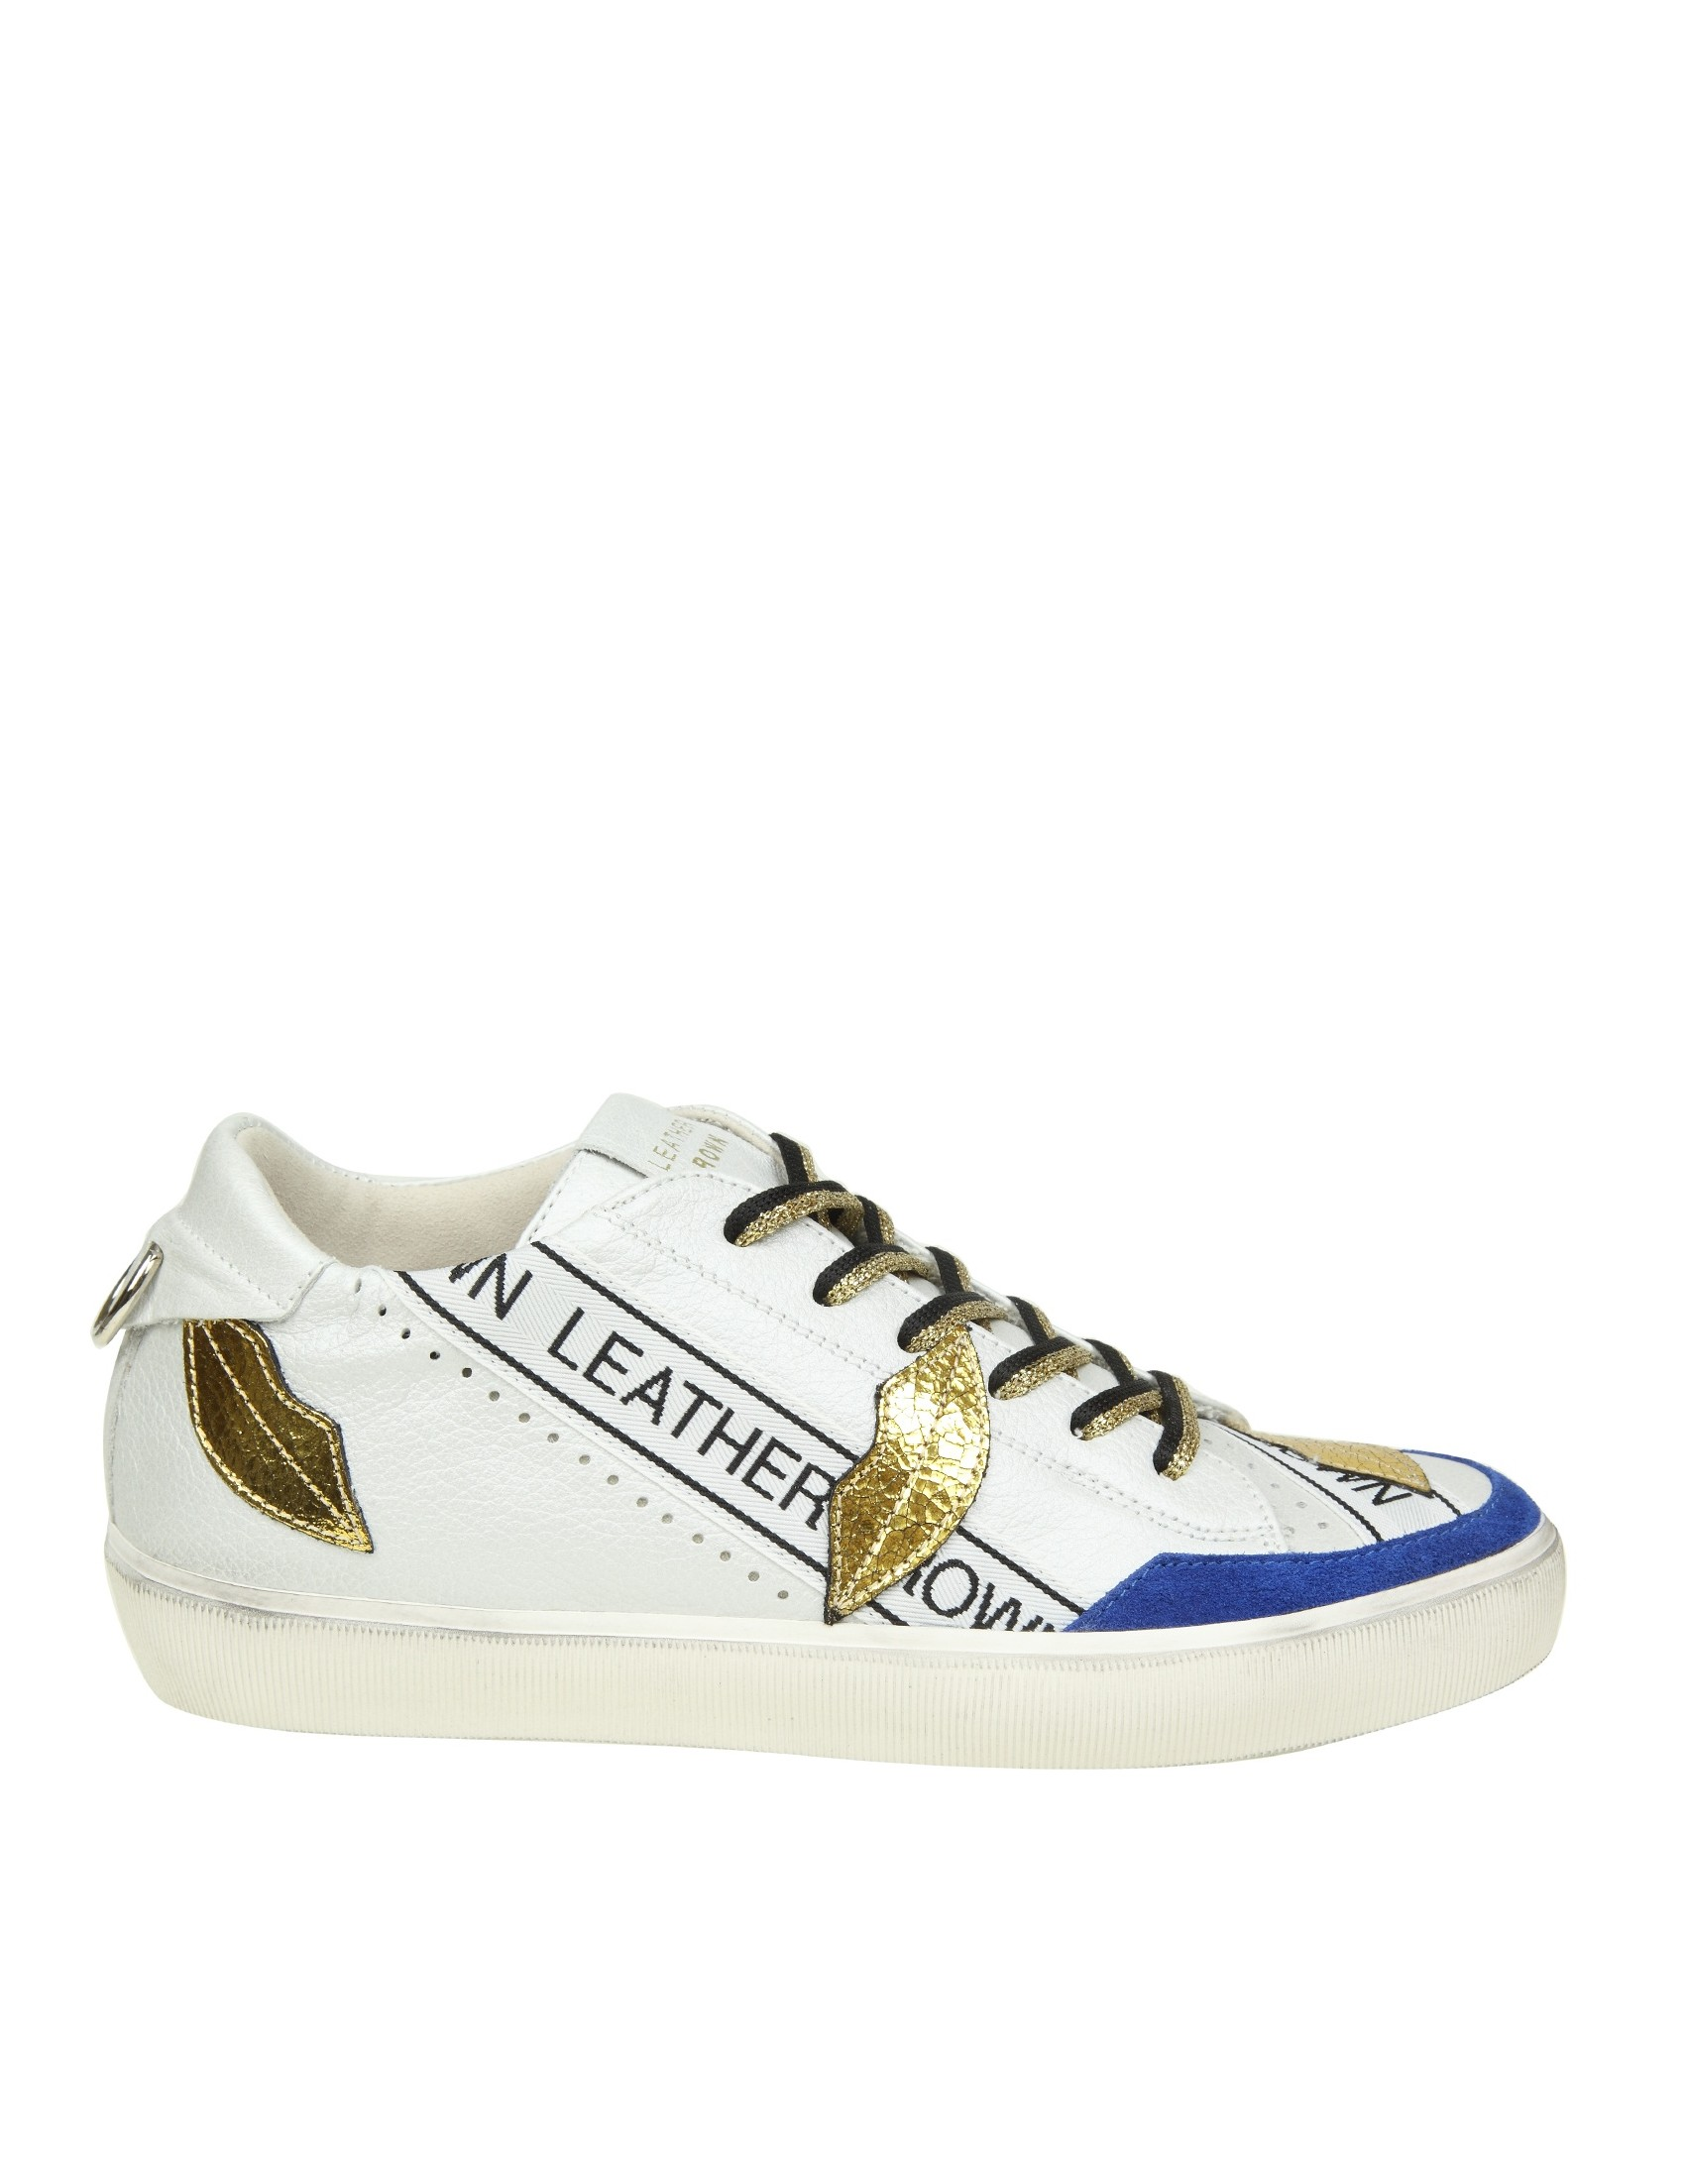 Leather Pelle Kisslow W Crown Donna Sneakers Bianco Baci CxBoed